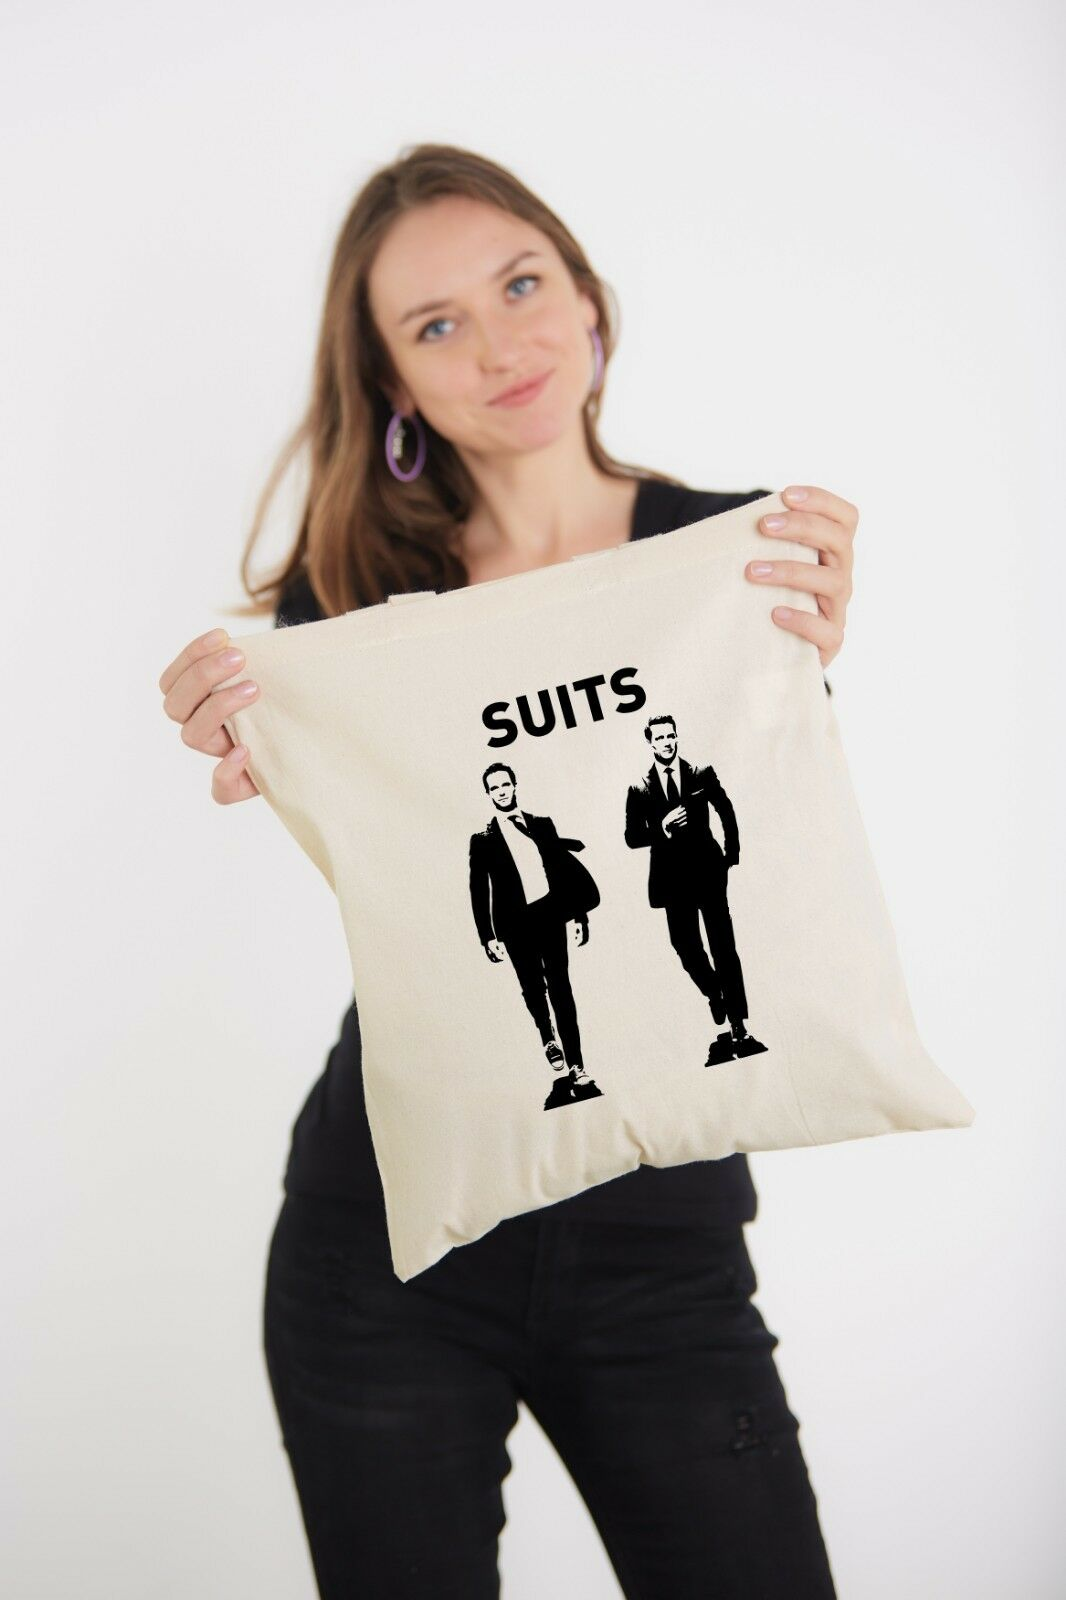 Suits Tv Show Characters Harvey Specter Mike Ross Printed Shoulder Tote Bag